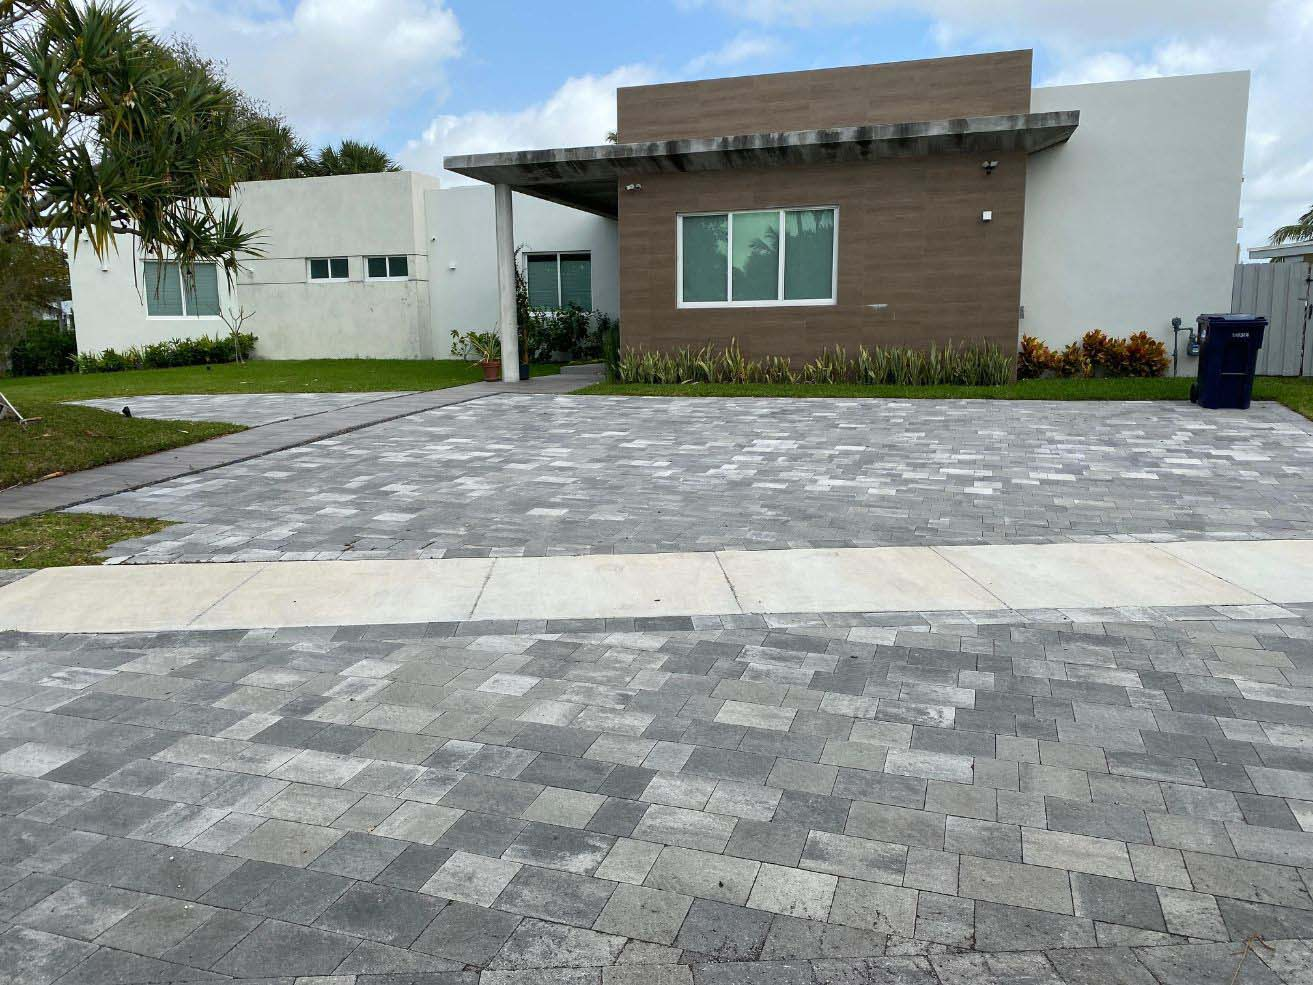 expert driveway paving in houston tx area